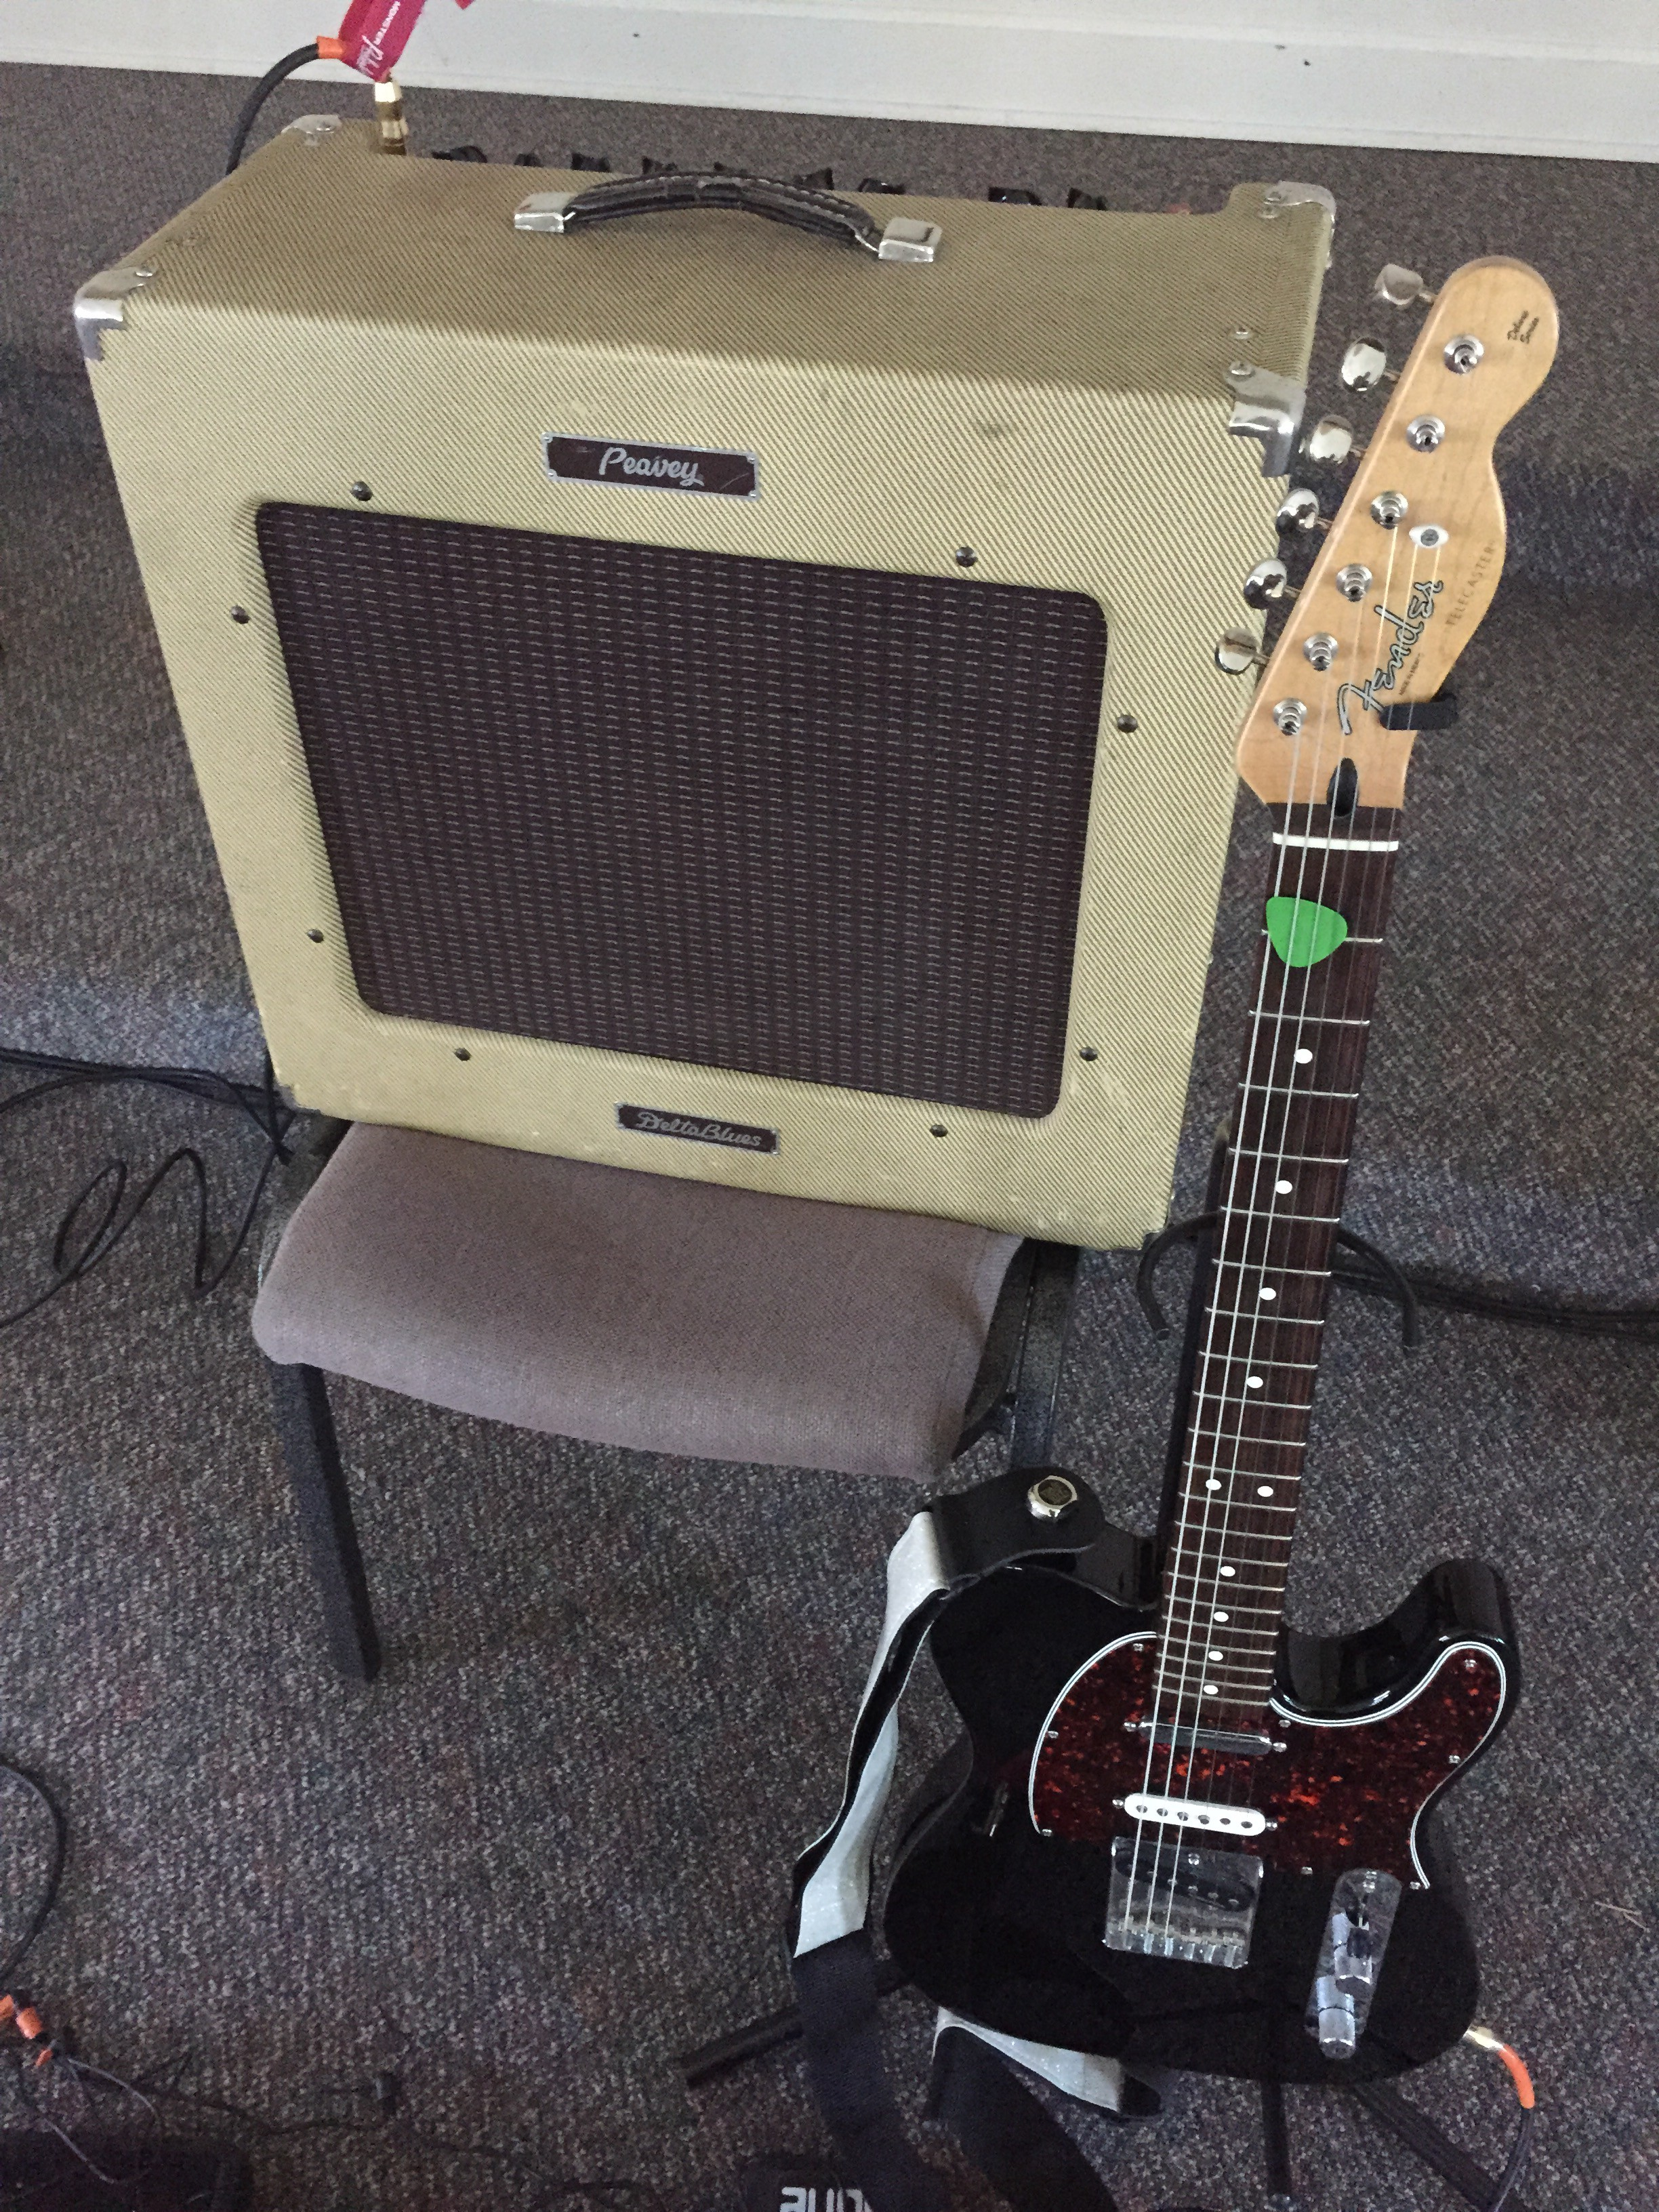 Guitar and amp, set up and ready to go.